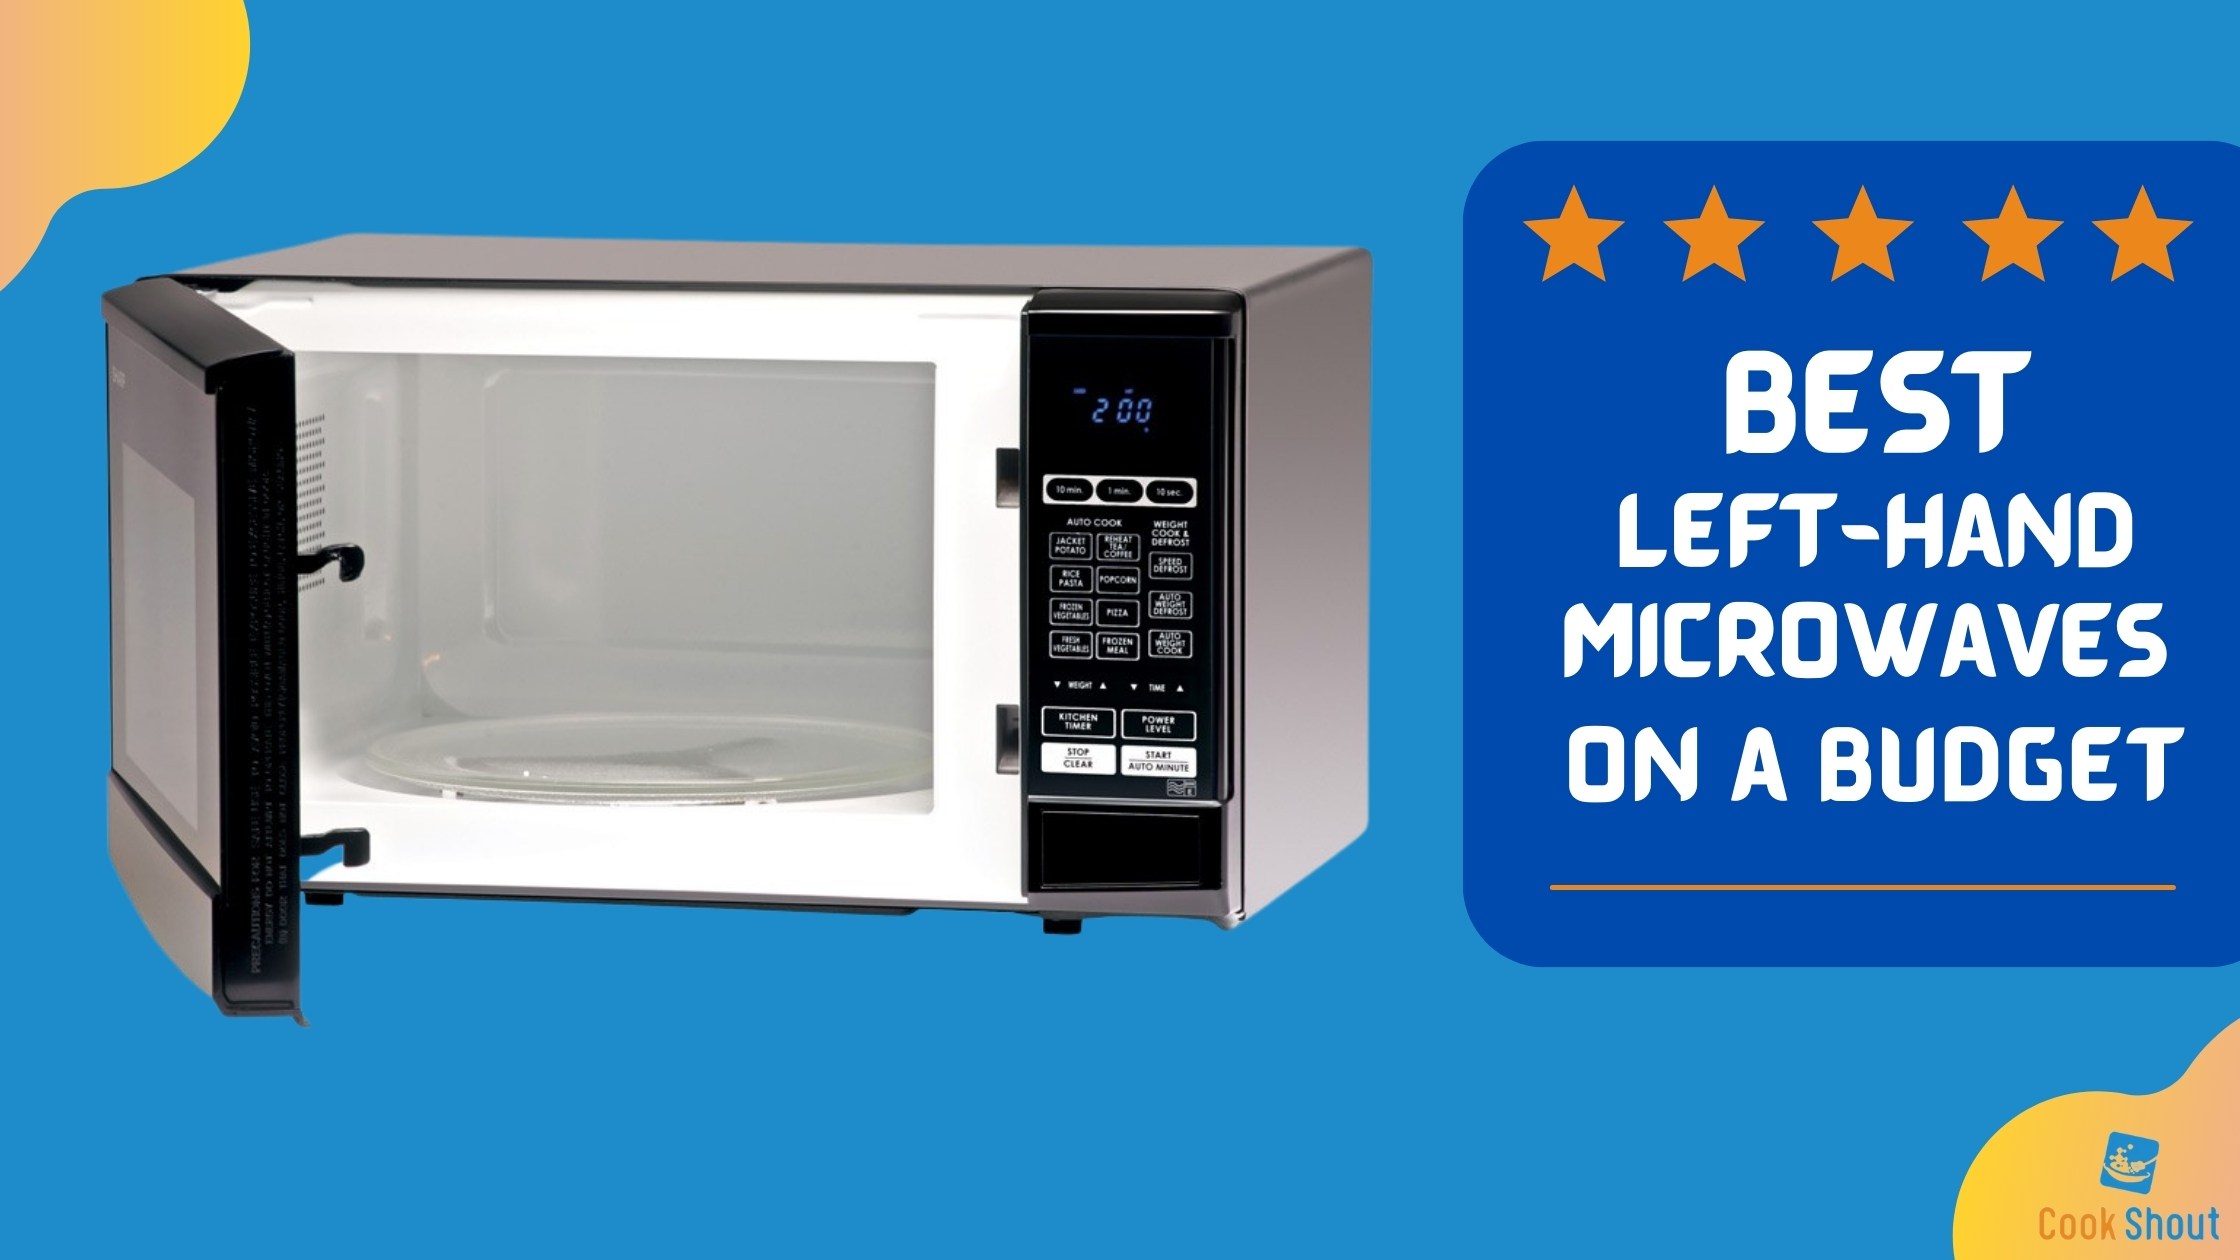 Best Left Hand Microwaves On a Budget